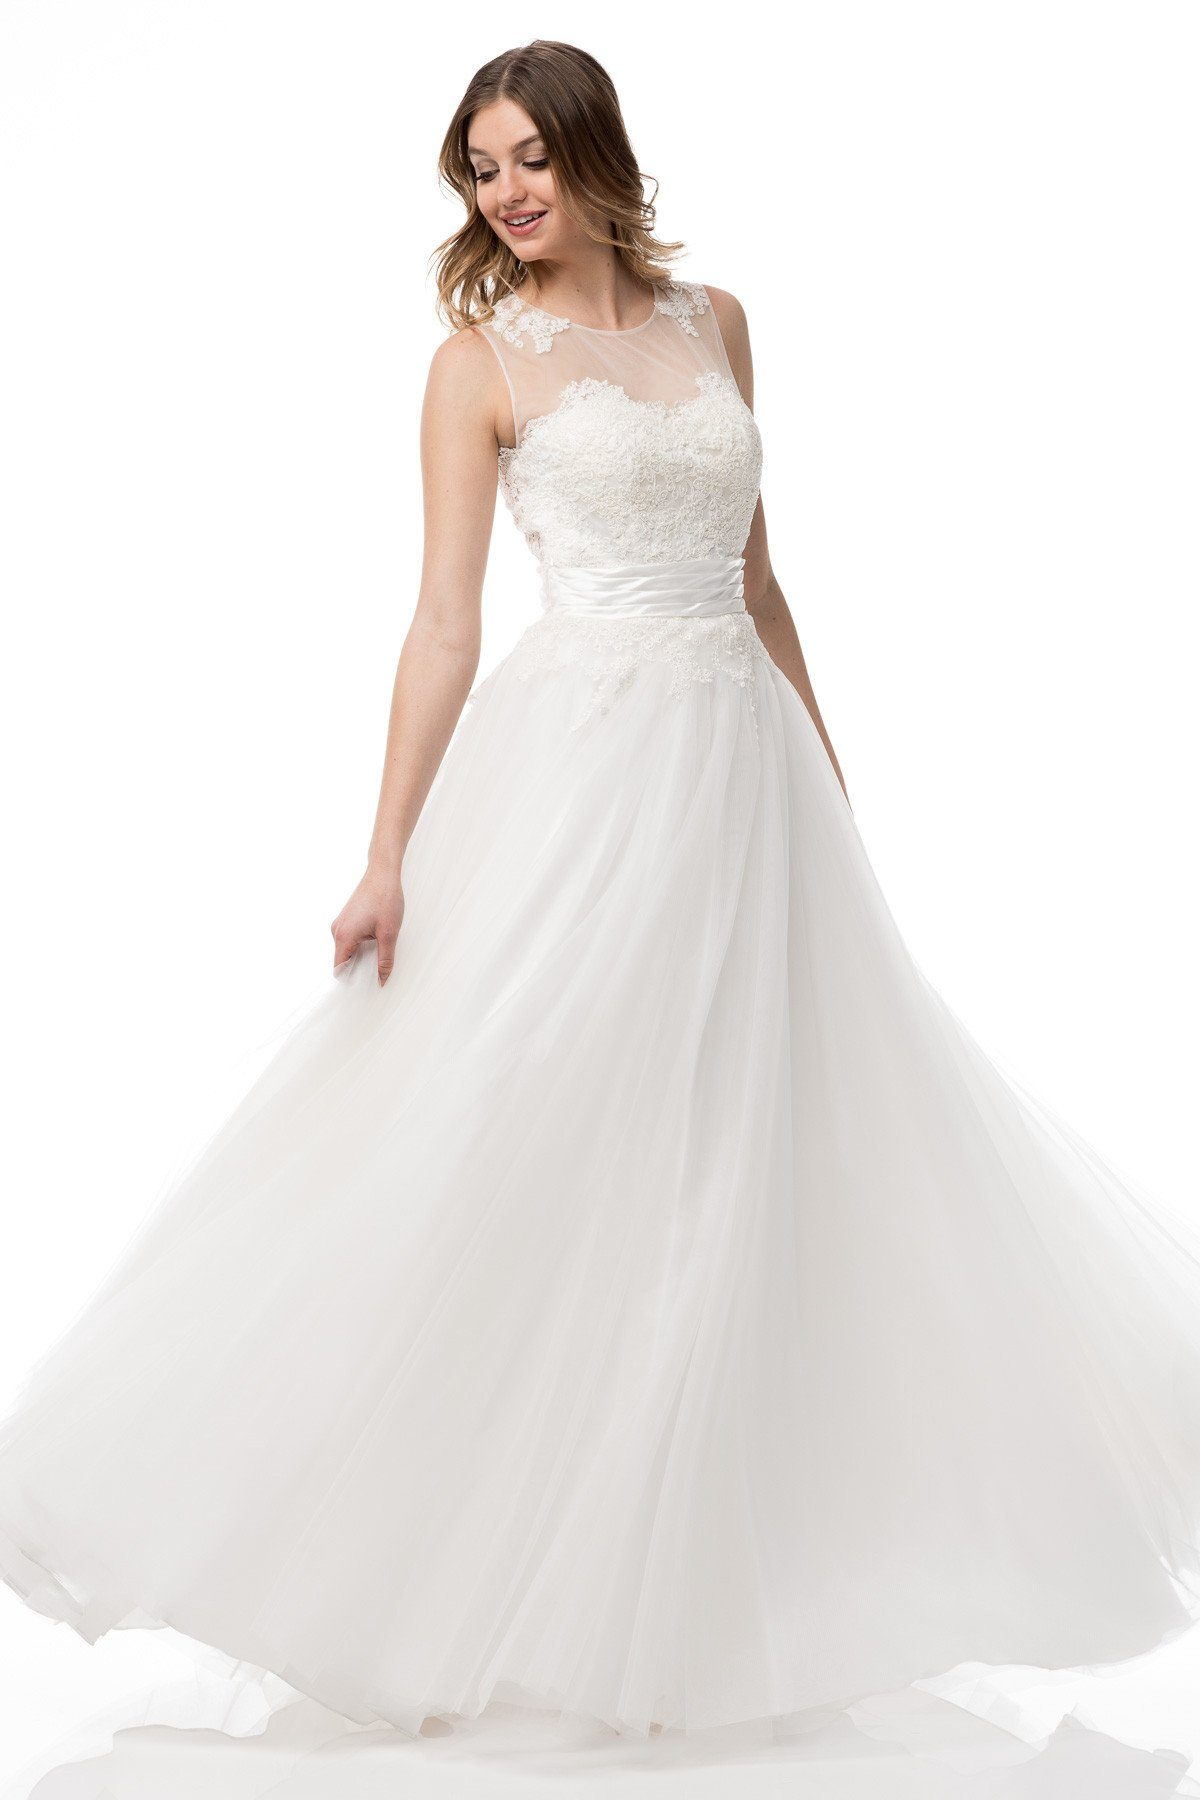 Inexpensive wedding dress with tulle skirt Bc#mzw2968 – Simply Fab Dress